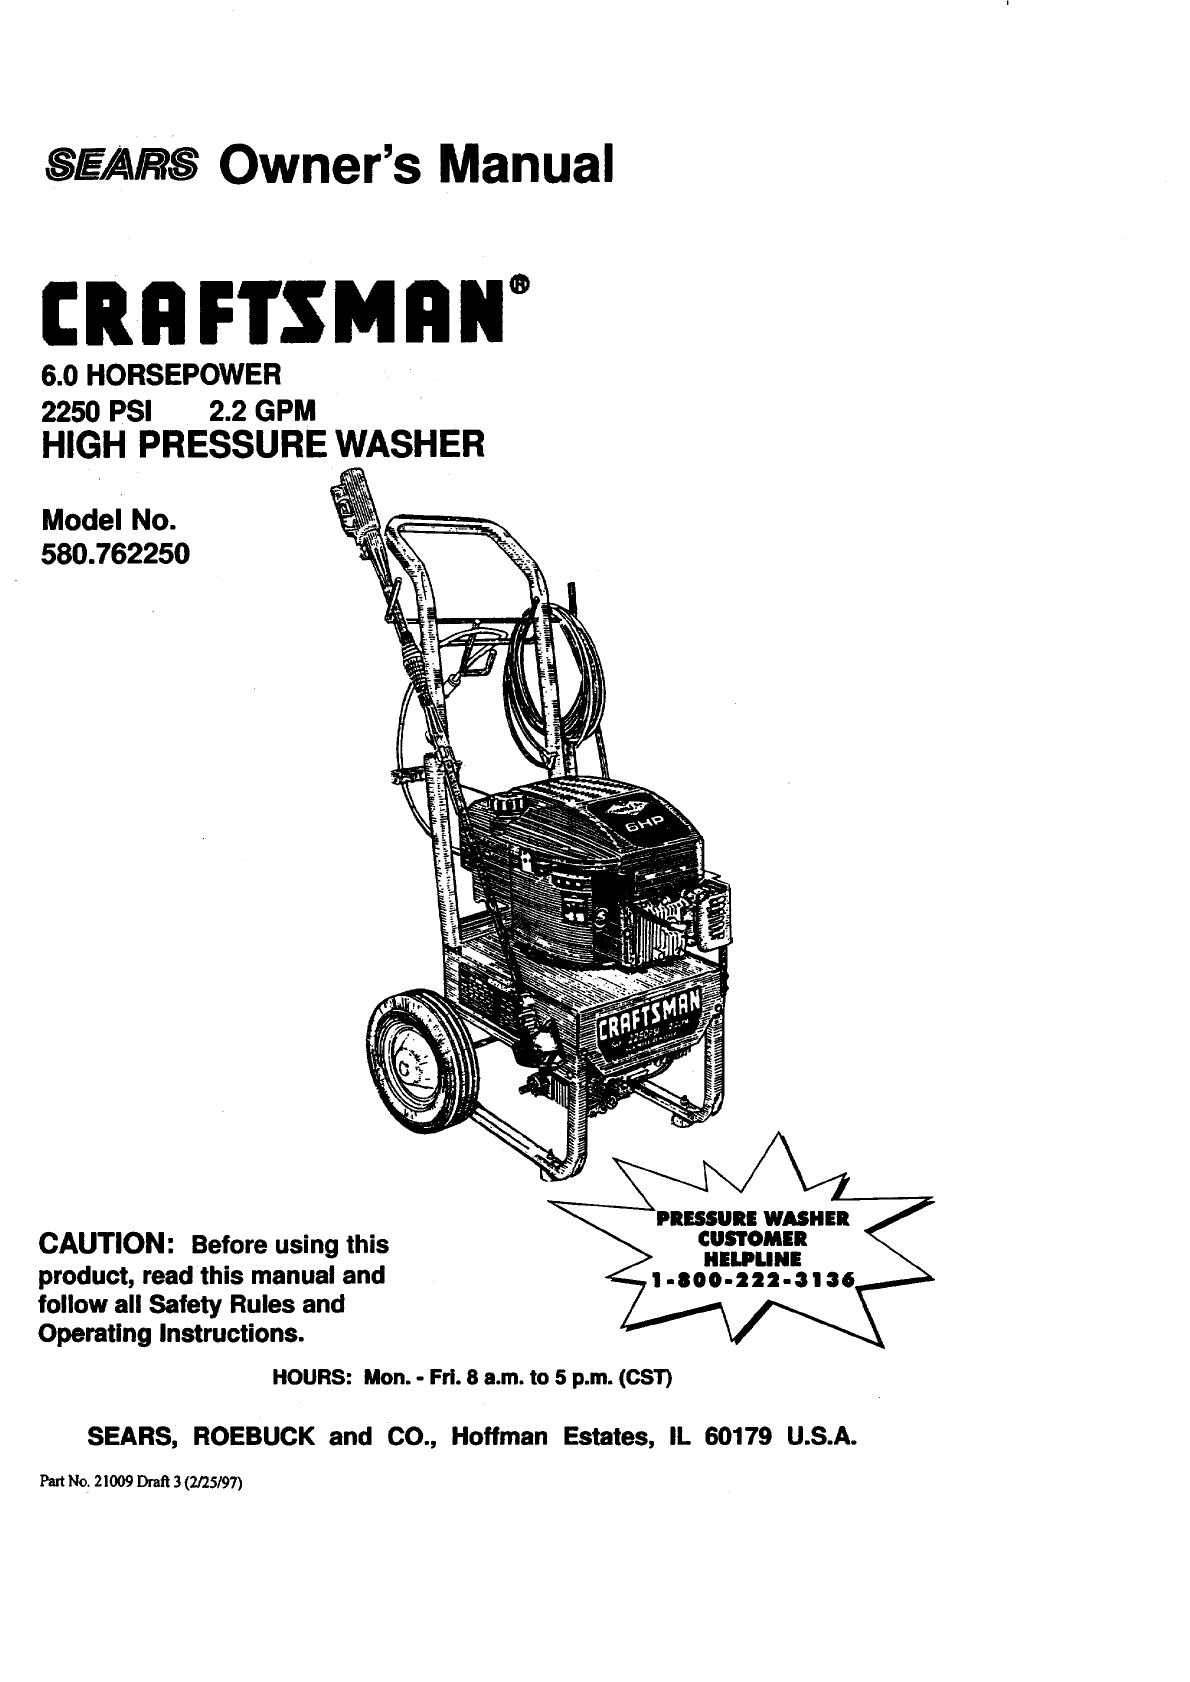 Craftsman Pressure Washer 580.76225 User Guide